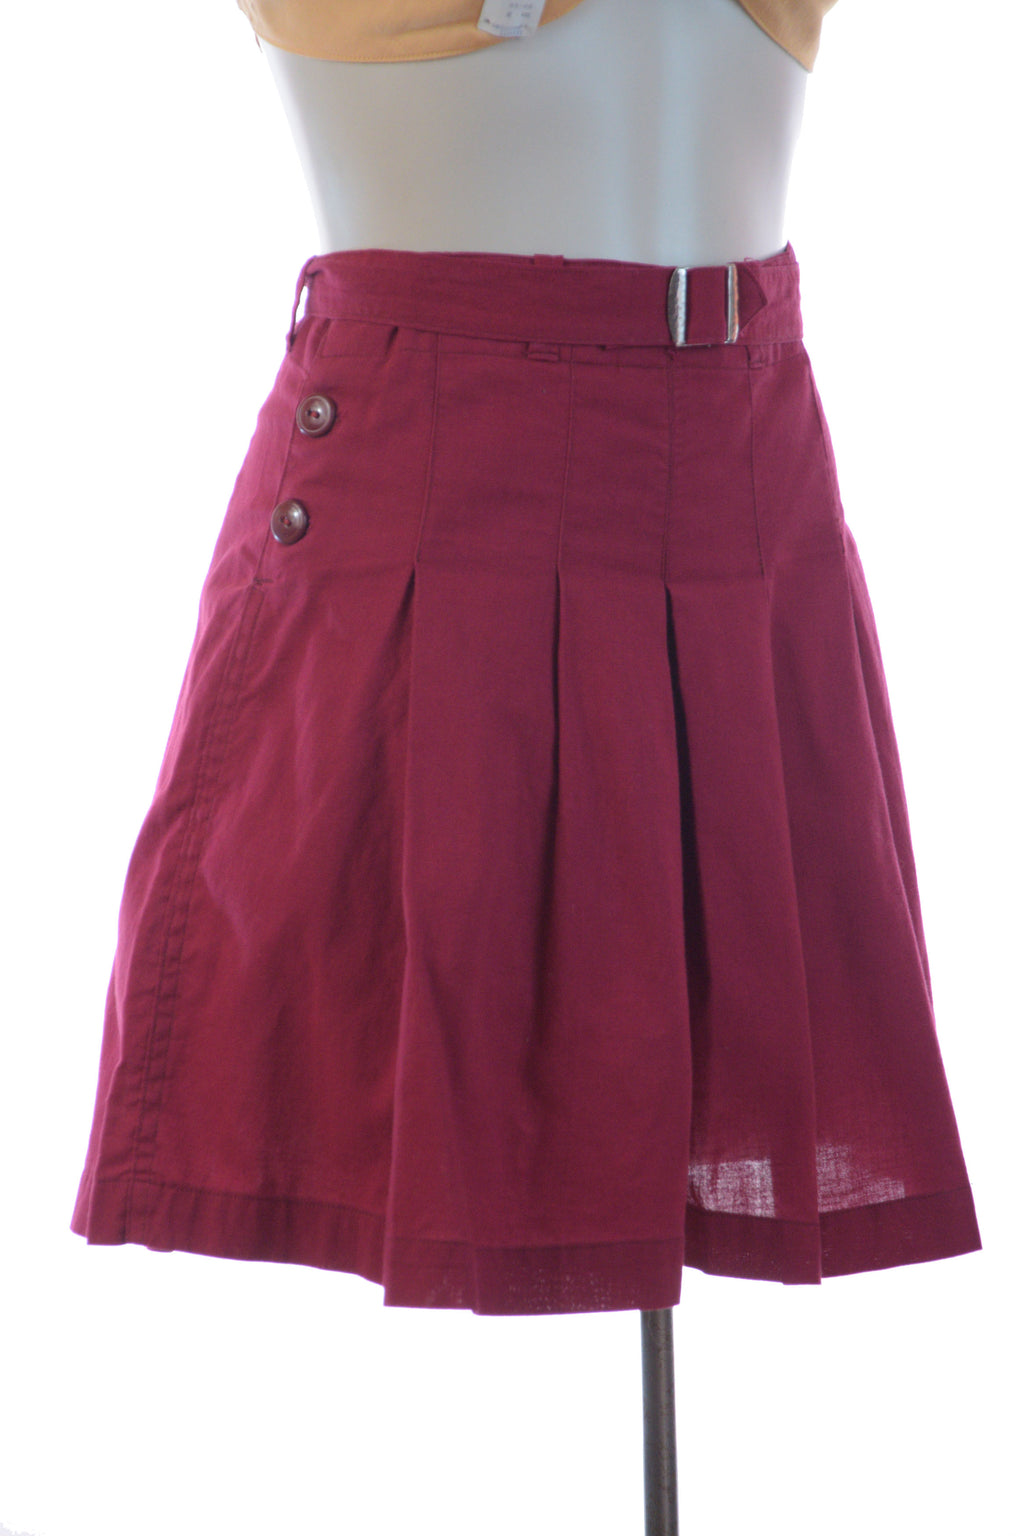 "Rare 1930s Deep Burgundy High Waist Shorts with Pleated Legs and Original Belt, ""Palais Royal, The House of Fashion"""